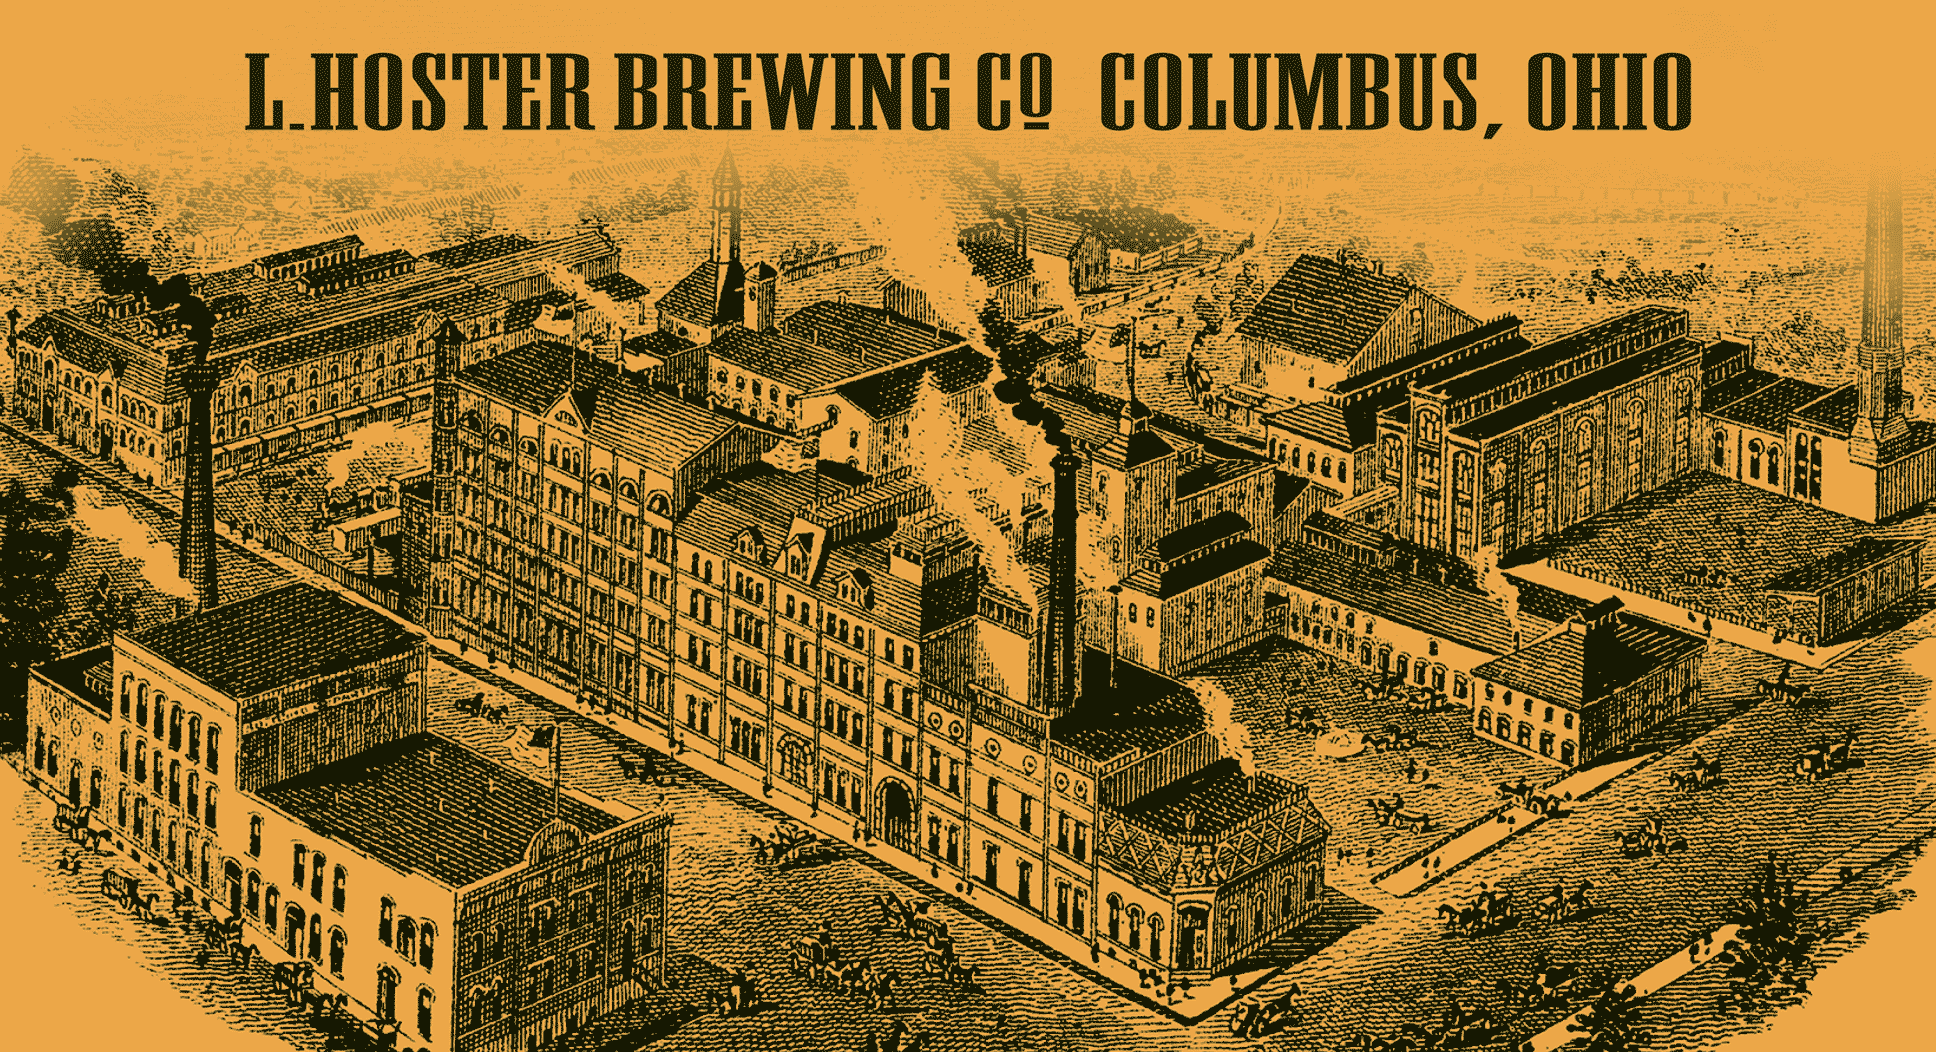 Engraving of Hoster Brewery